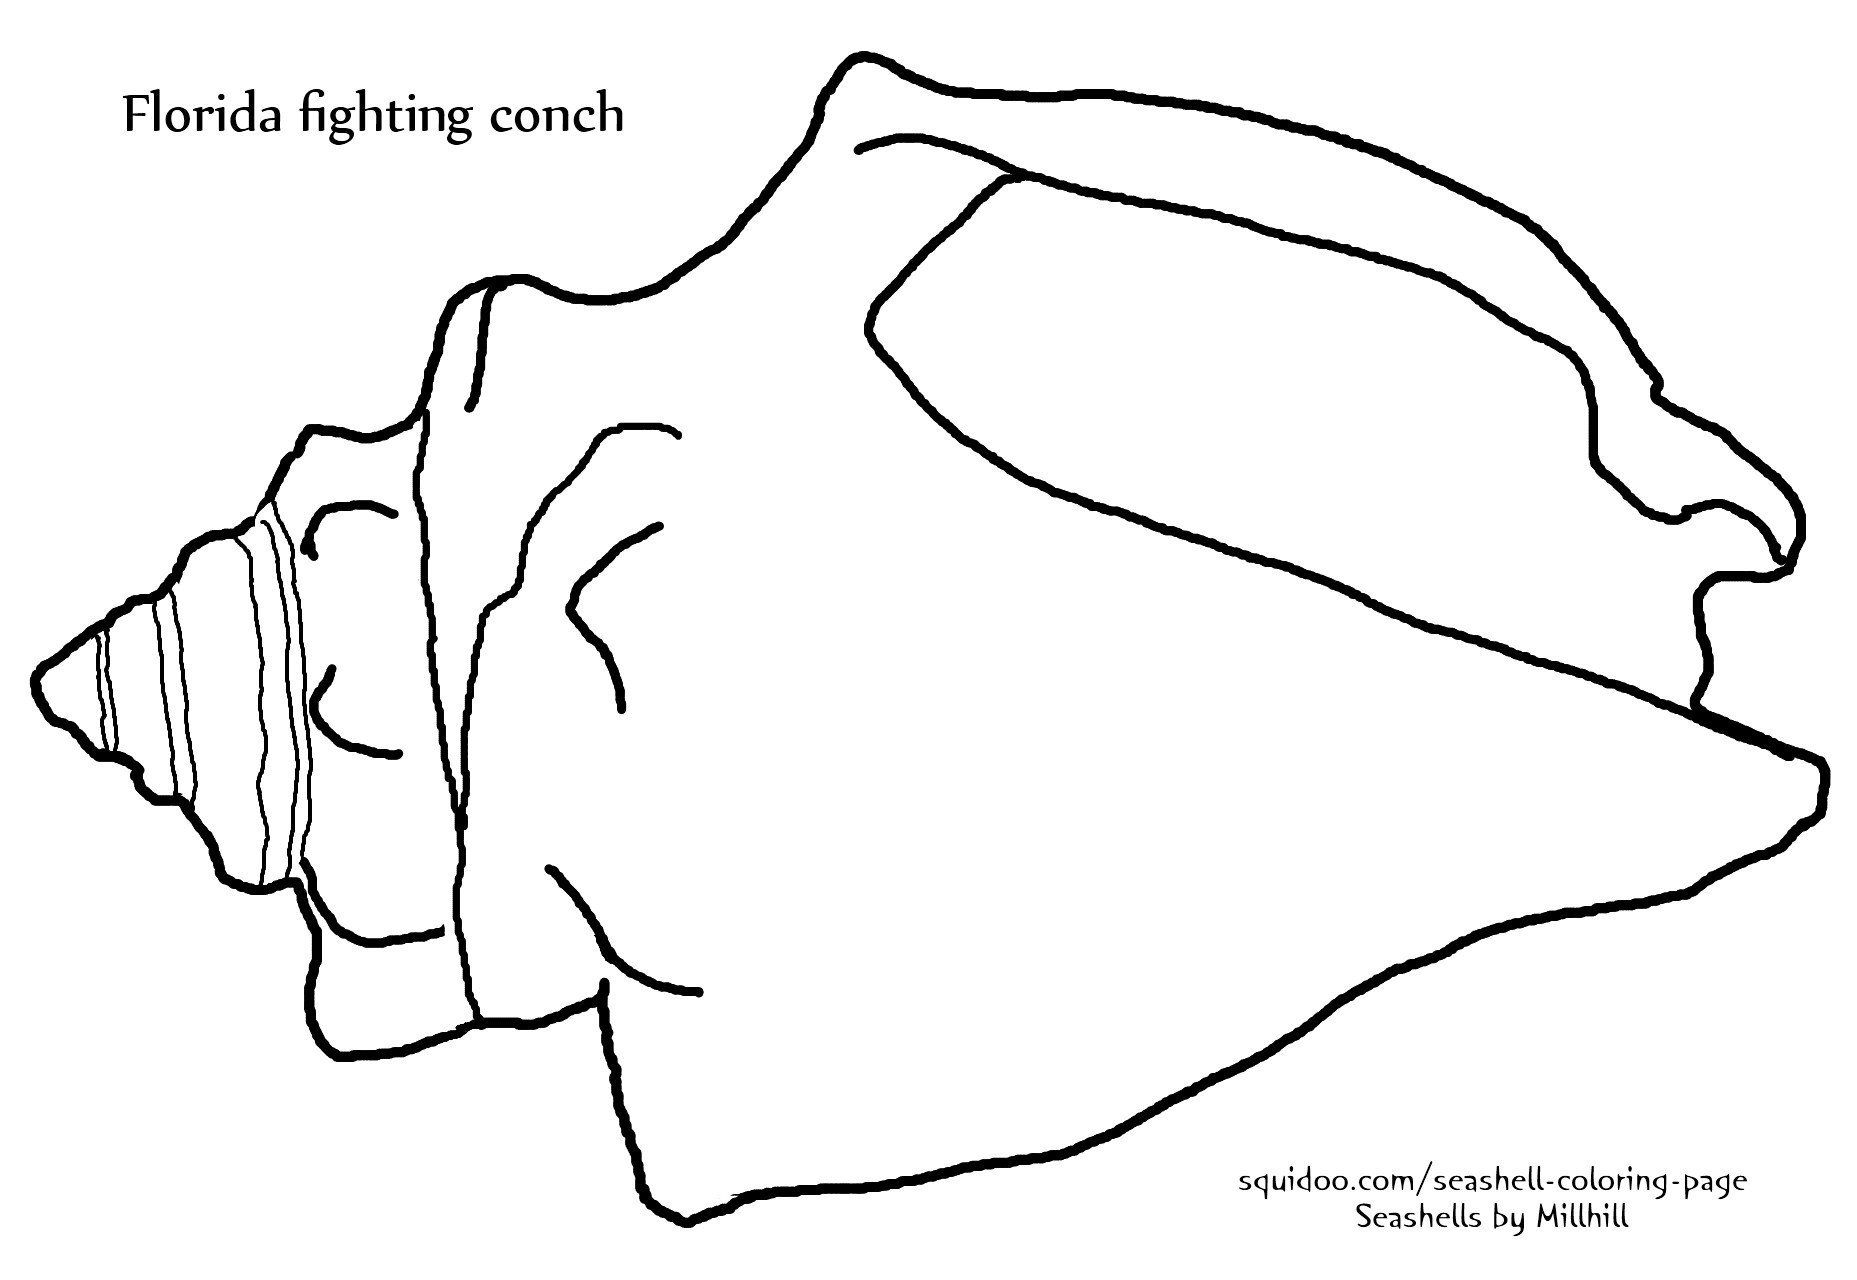 John Cena Coloring Pages New 20 Beautiful Shell Coloring Pages In 2020 Coloring Pages Seashells Template Coloring Pages For Kids